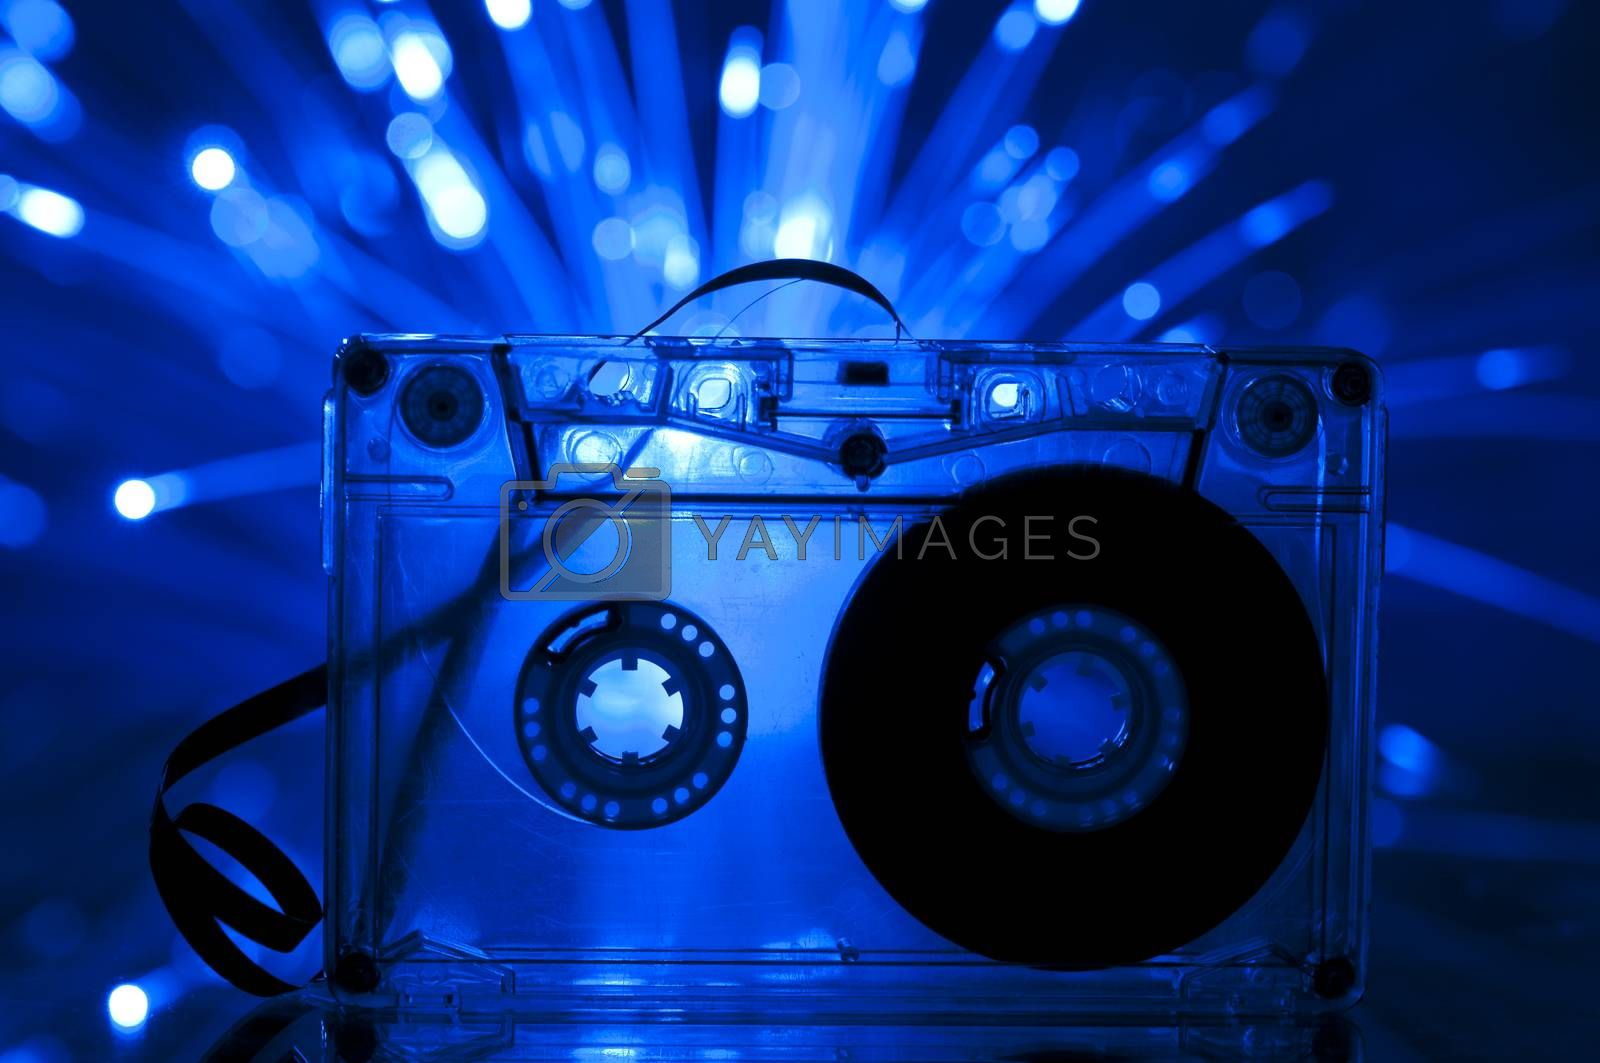 Cassette tape and multicolored blue lights on background